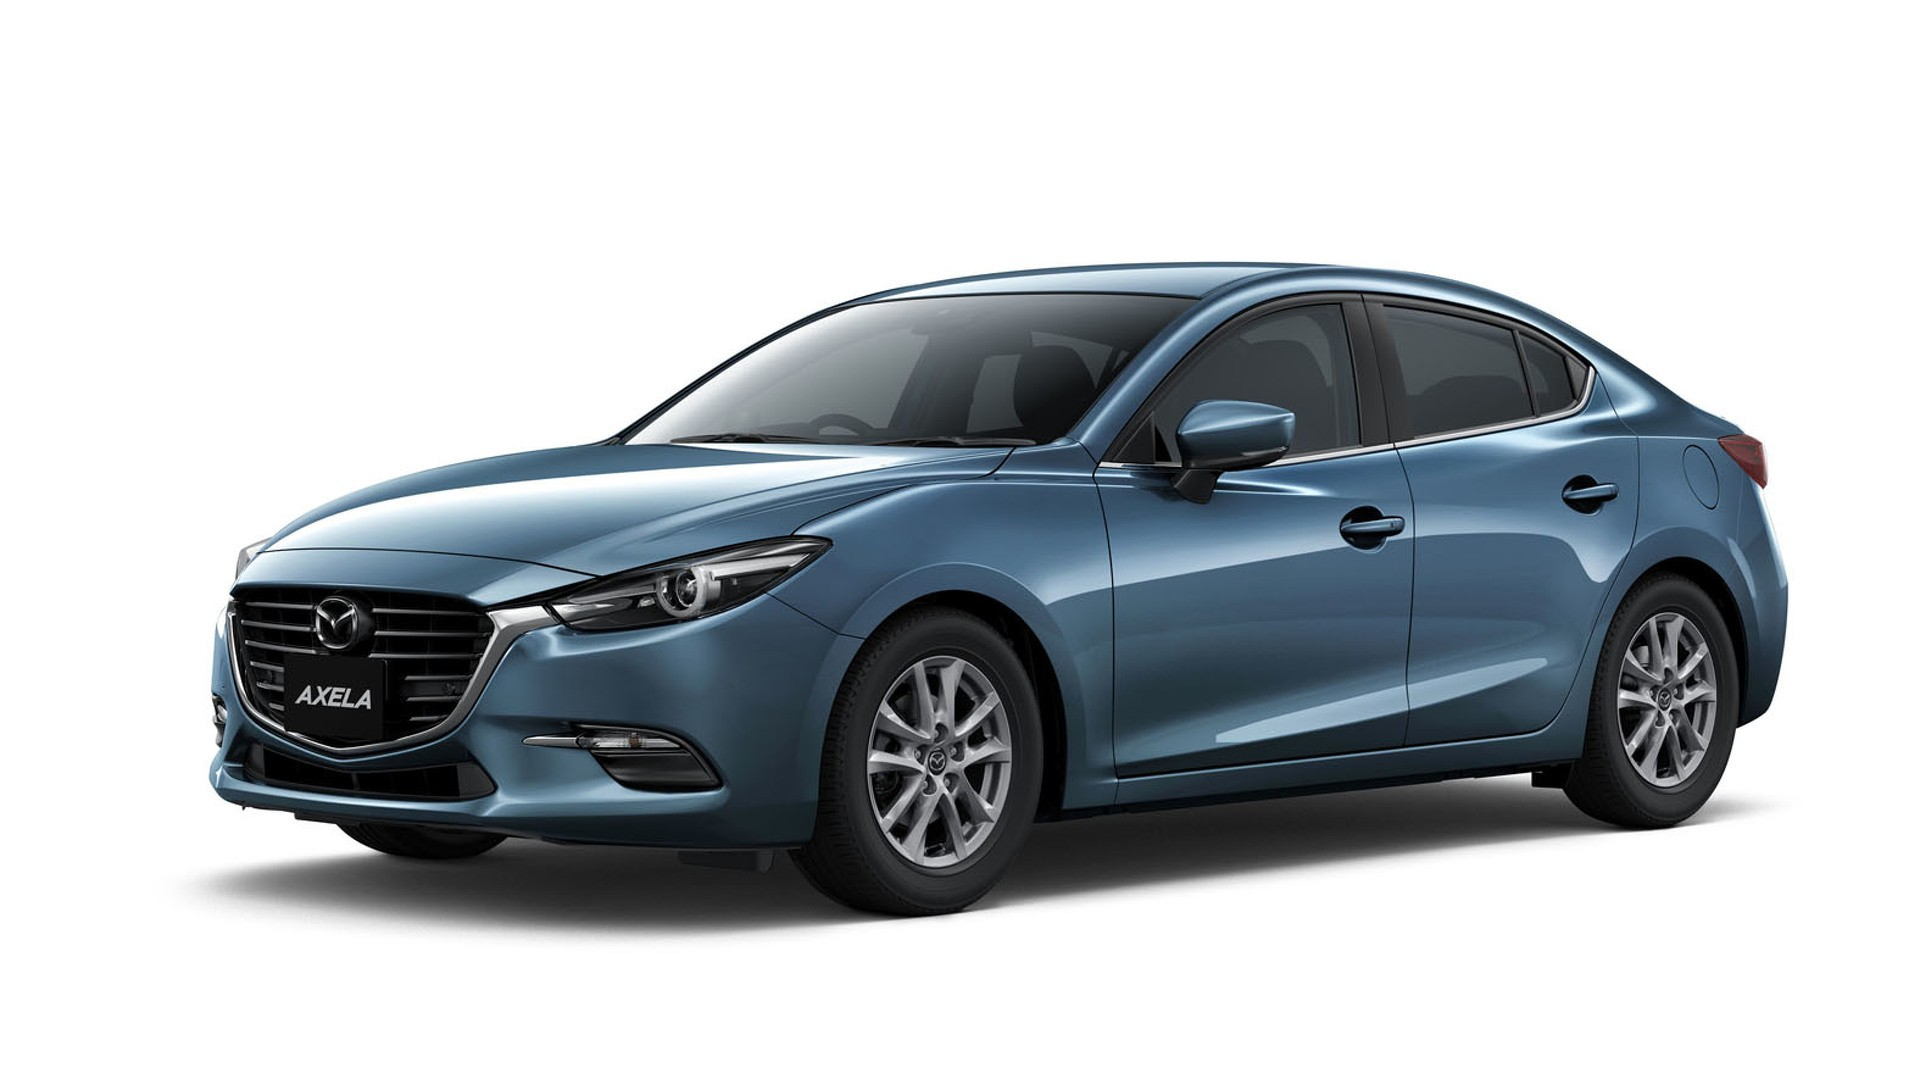 2018 mazda3 in for mild updates all new model with hcci engine in the pipeline autoevolution. Black Bedroom Furniture Sets. Home Design Ideas